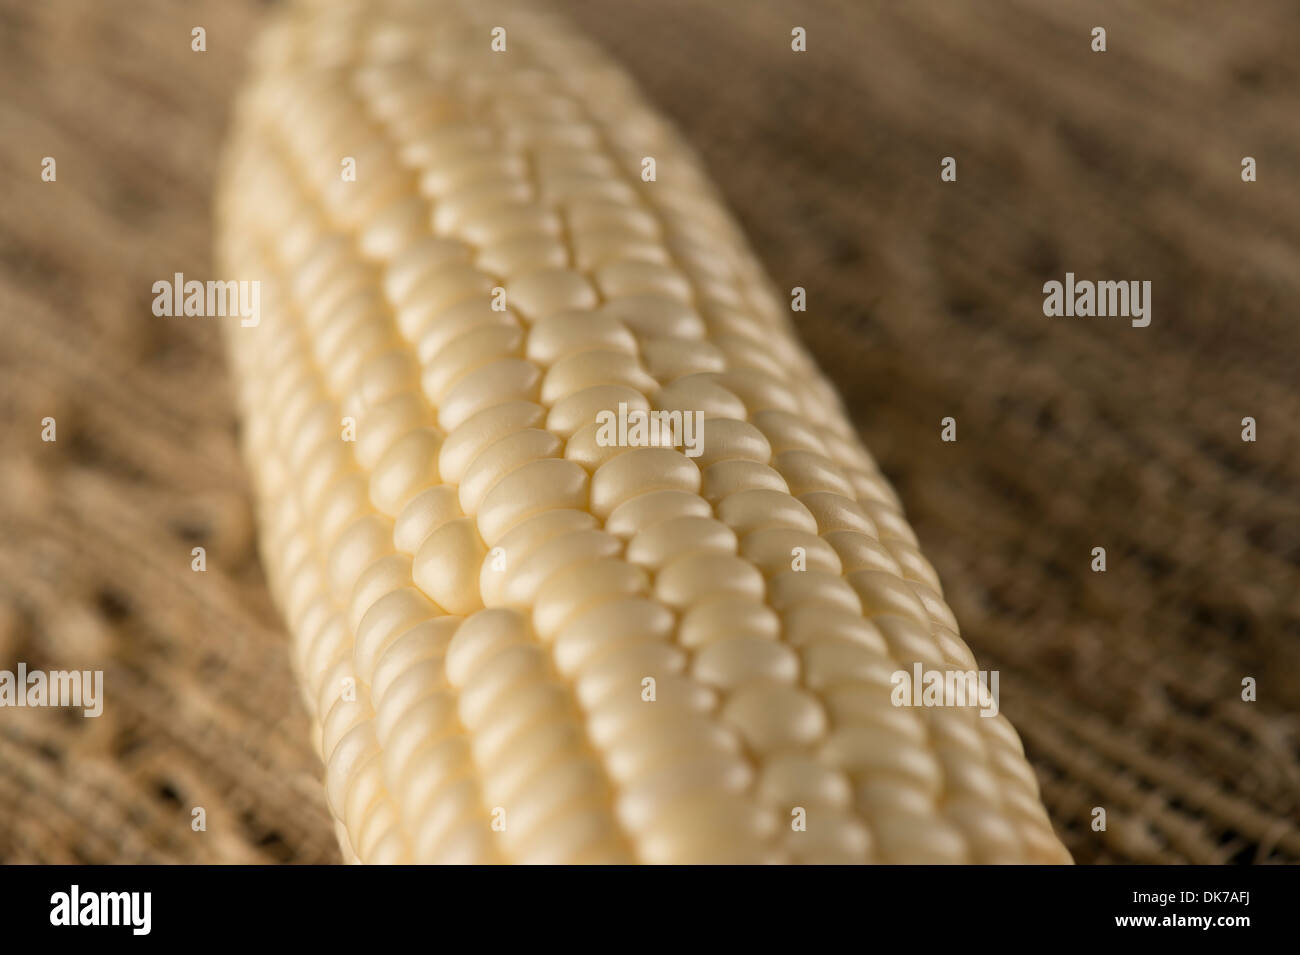 Close up image of yellow corn on the cob - Stock Image